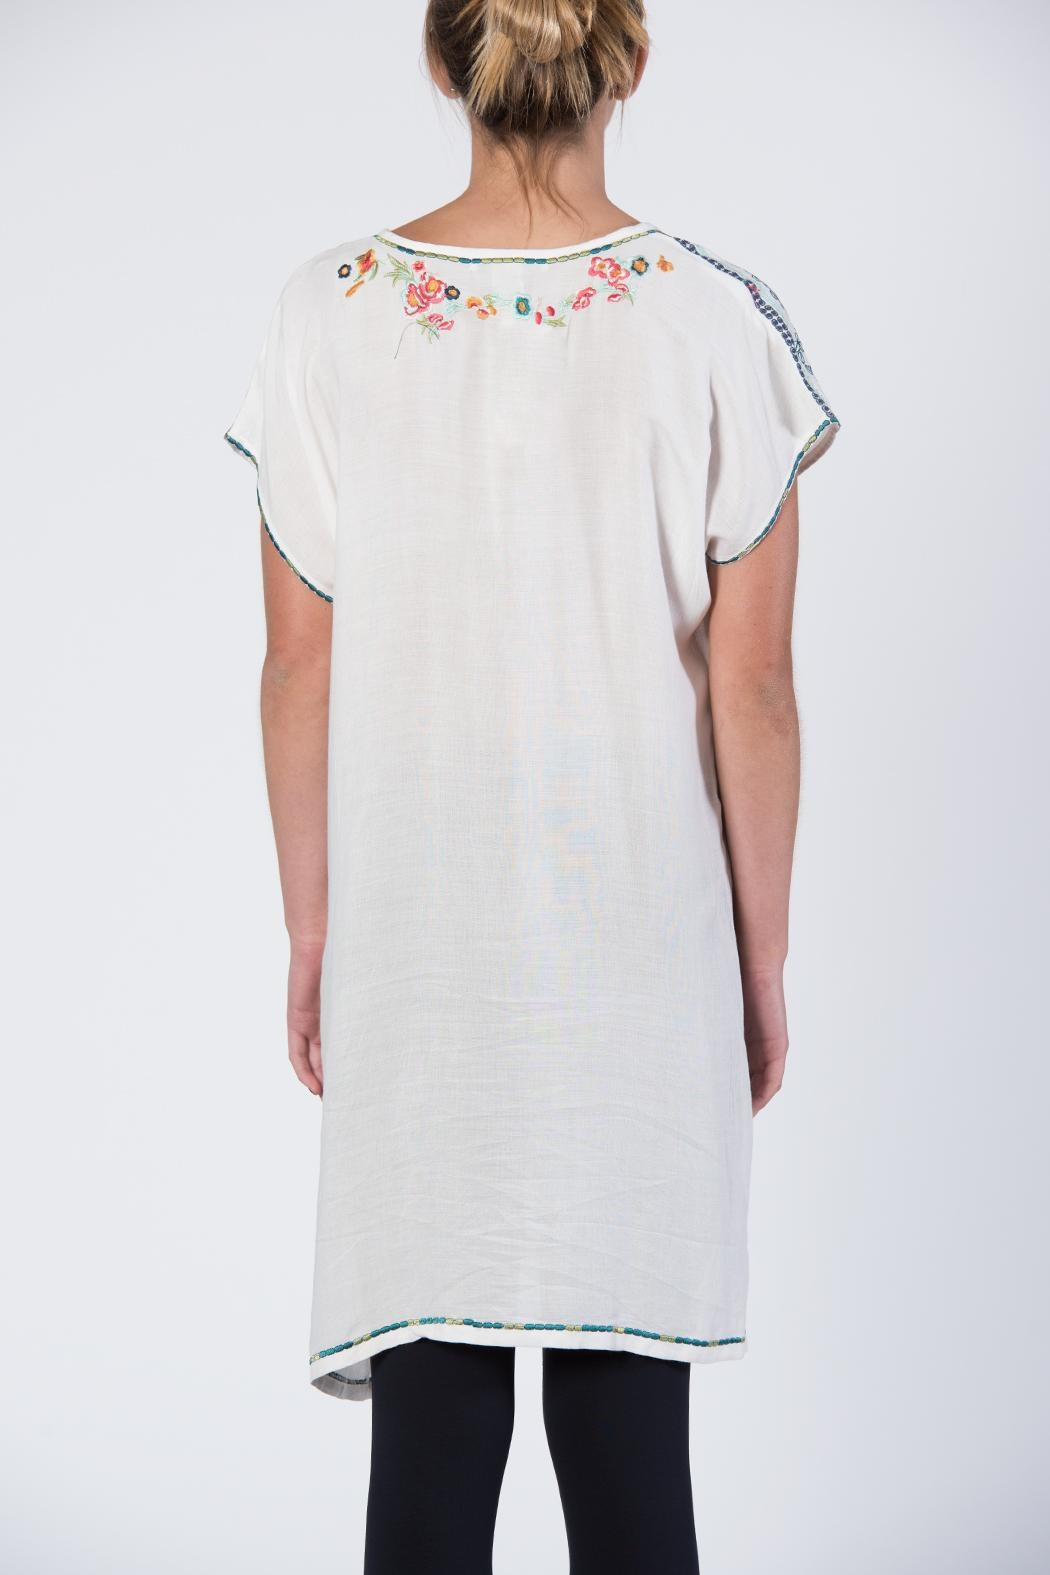 Apparel Love Multicolor Embroidered Tunic Top - Side Cropped Image